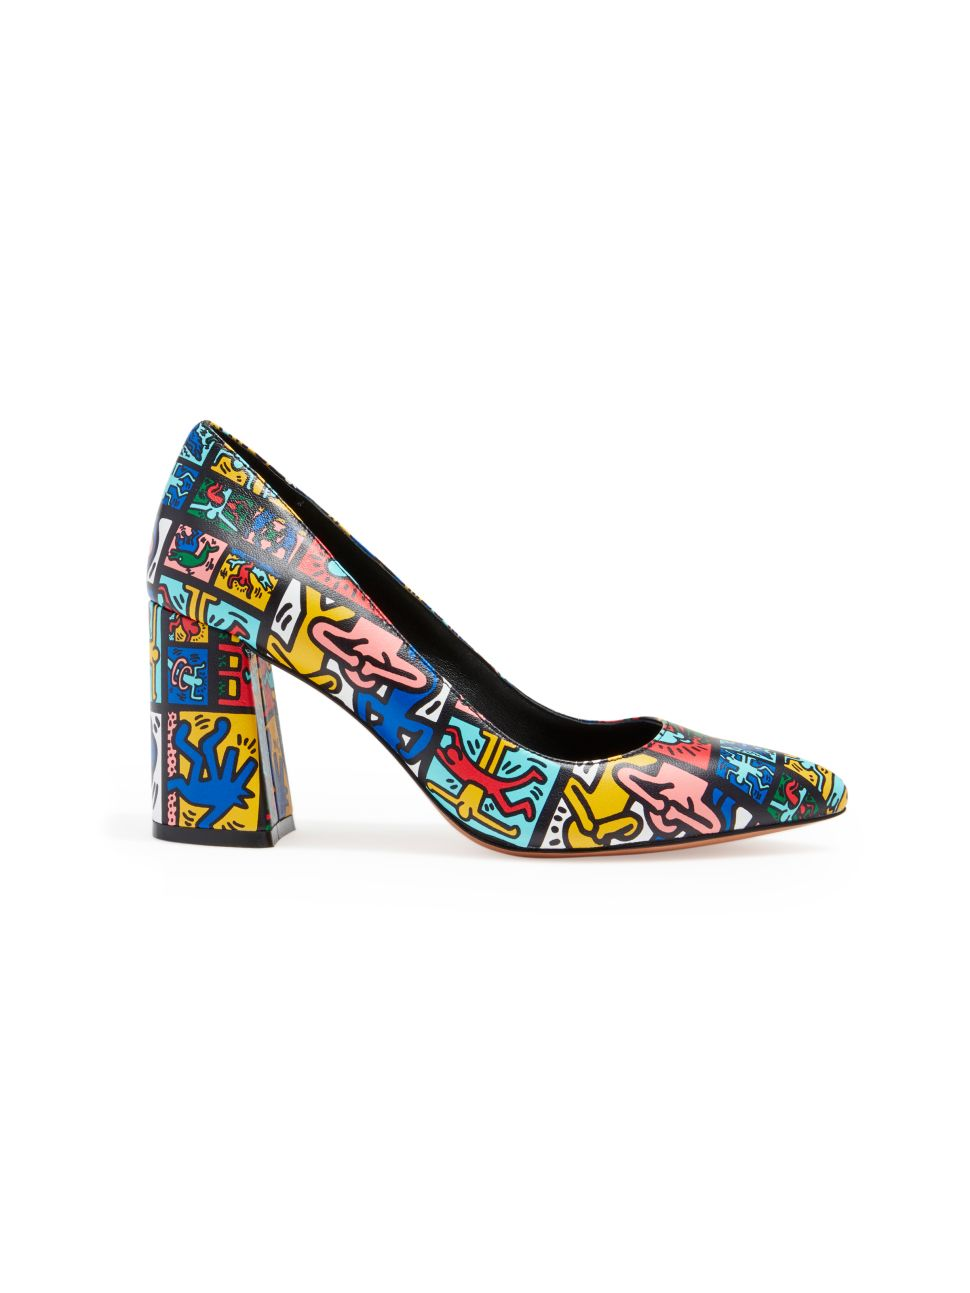 Why Alice + Olivia's Keith Haring Fashion Line Is a Fitting Tribute to His Socially Conscious Work